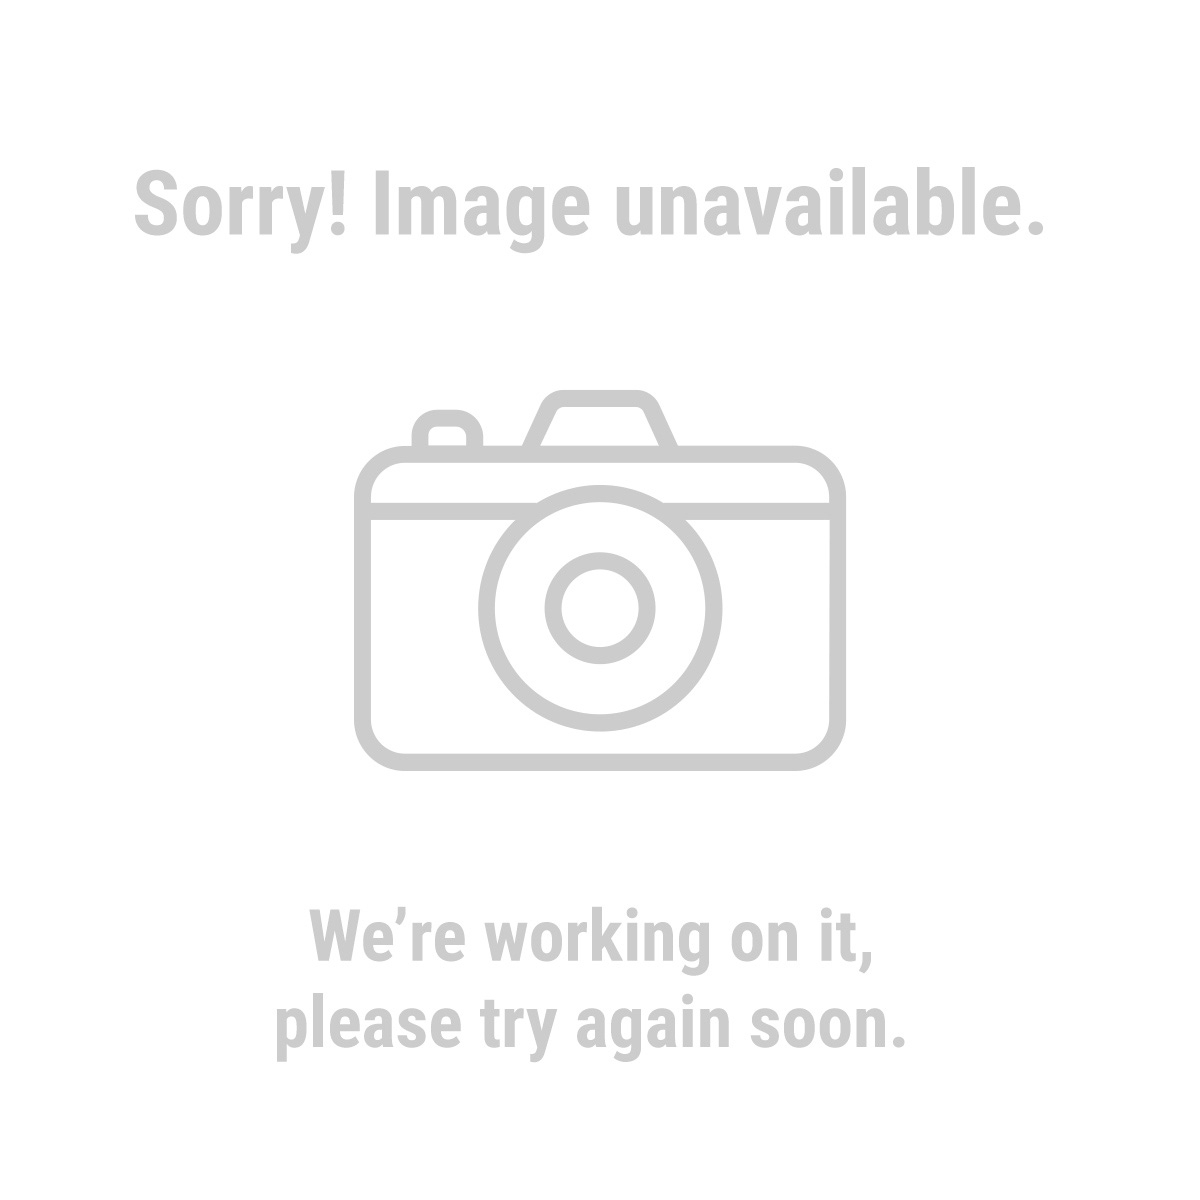 Harbor Freight Cheapo Air Tank of YELLOW DEATH! ($24.95)